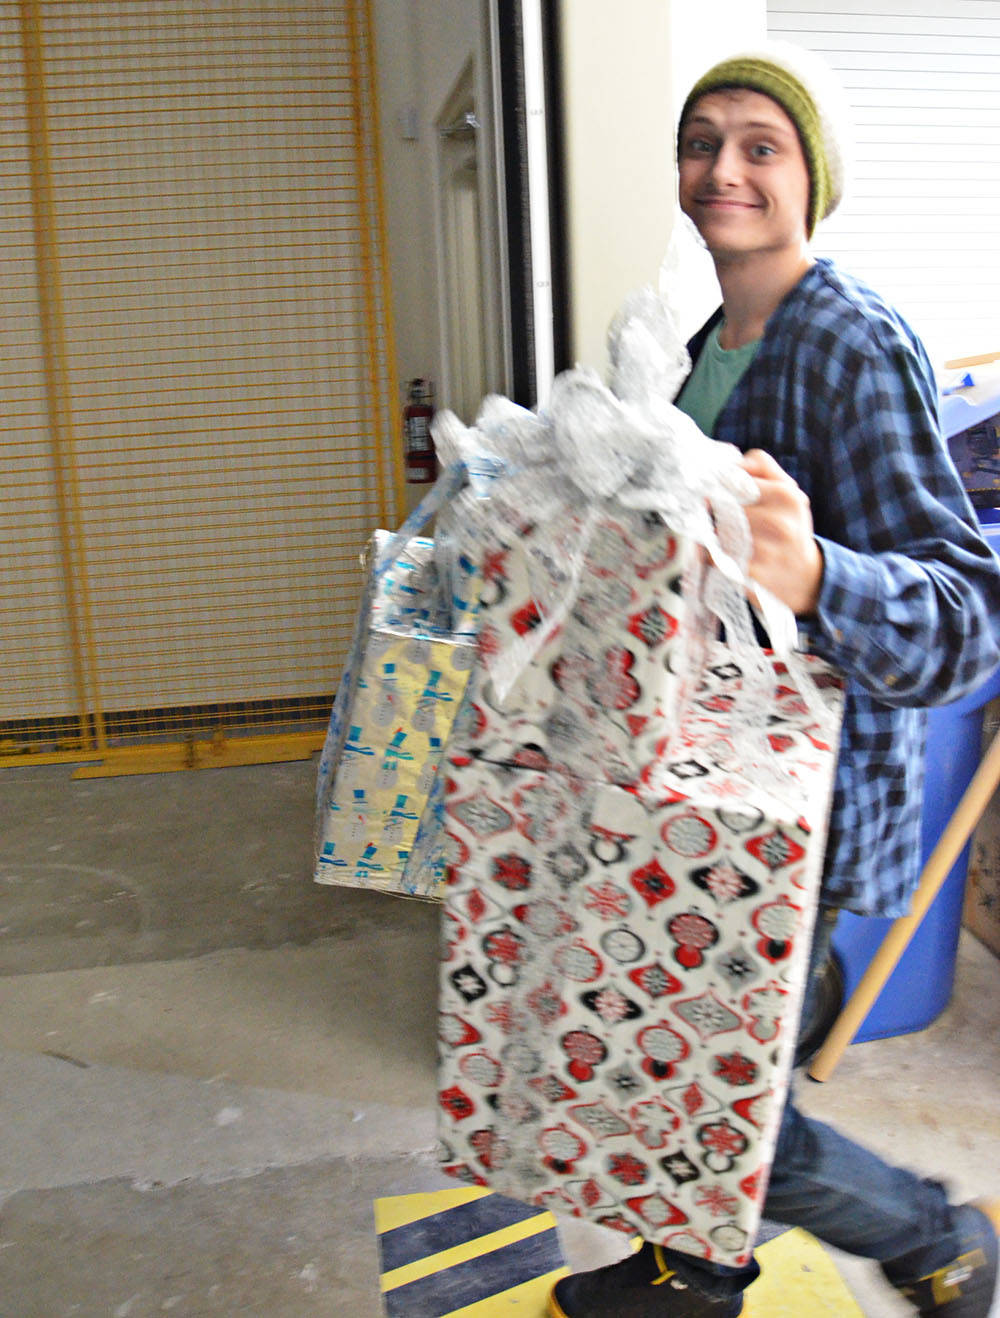 Brody Schale helped unload supplies for the Langley Christmas Bureau on Oct. 28. (Heather Colpitts/Langley Advance Times)